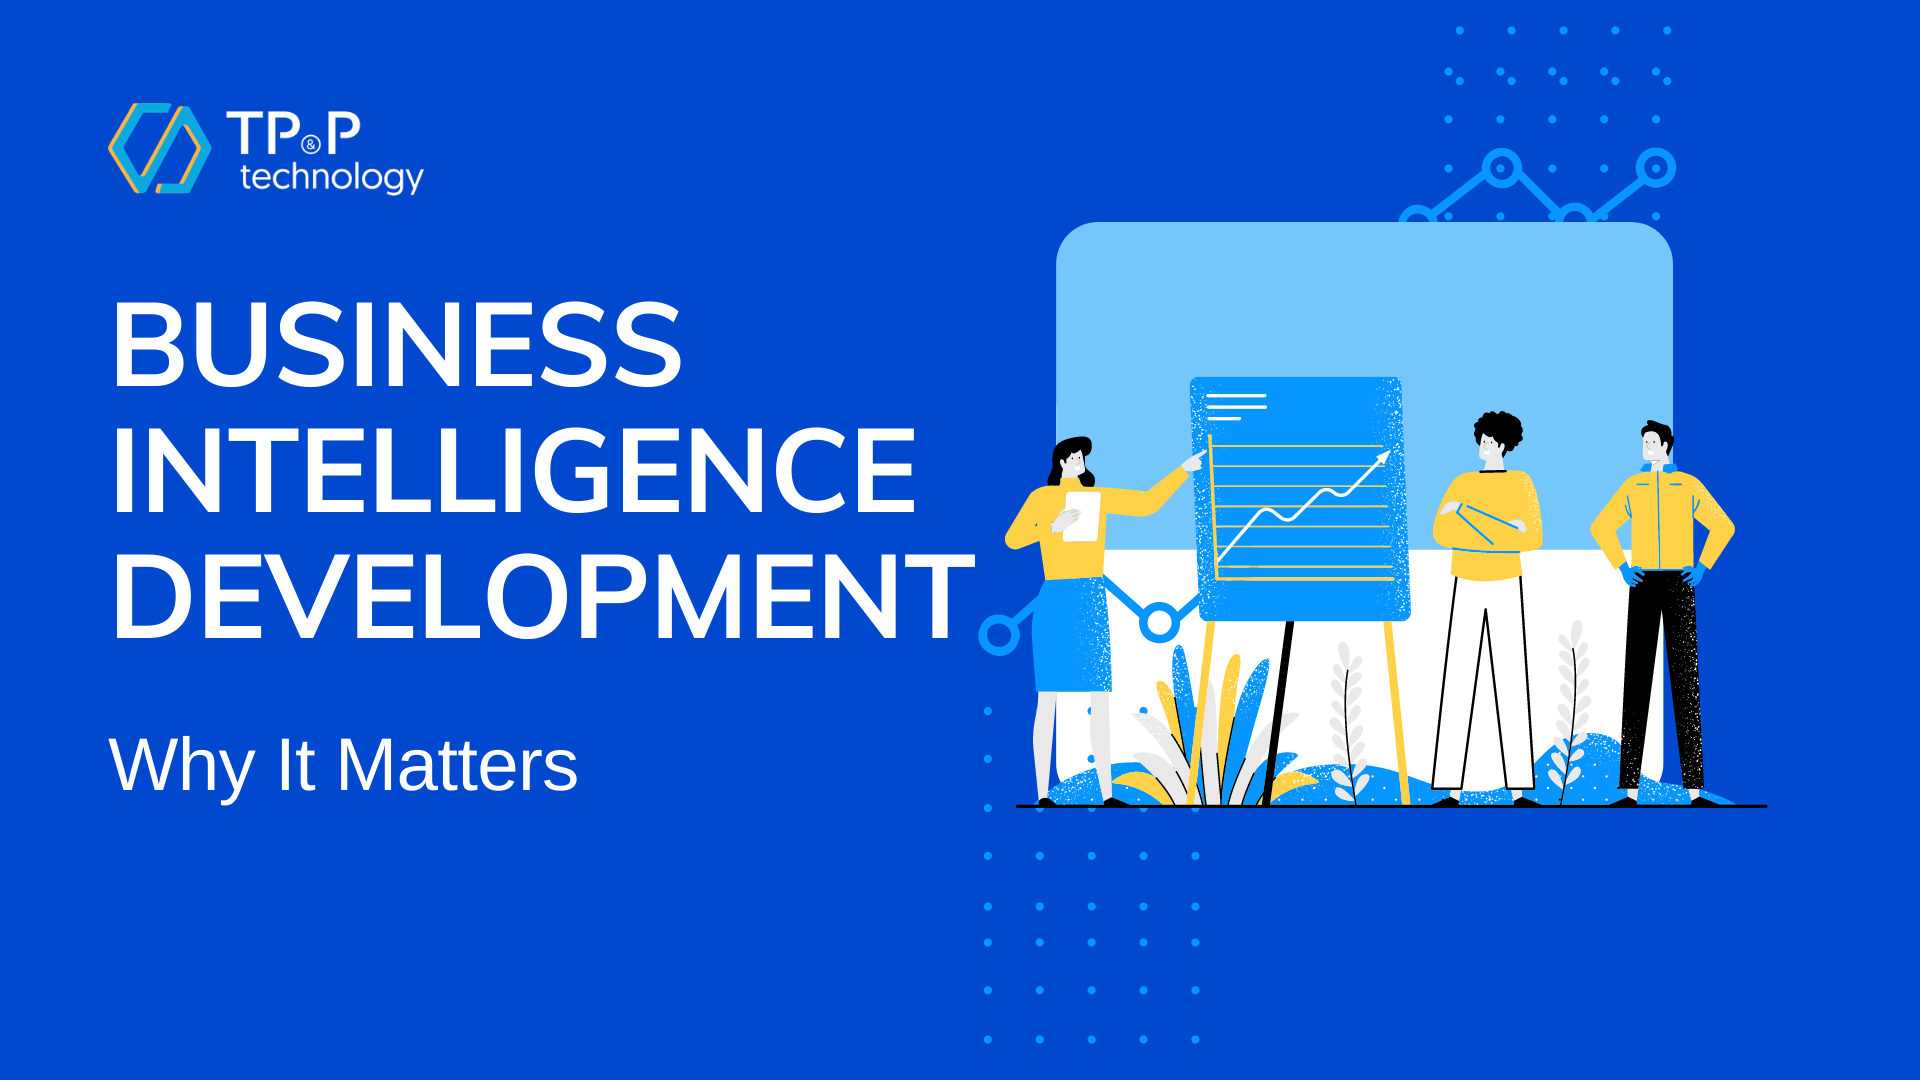 Business Intelligence Development: Why It Matters